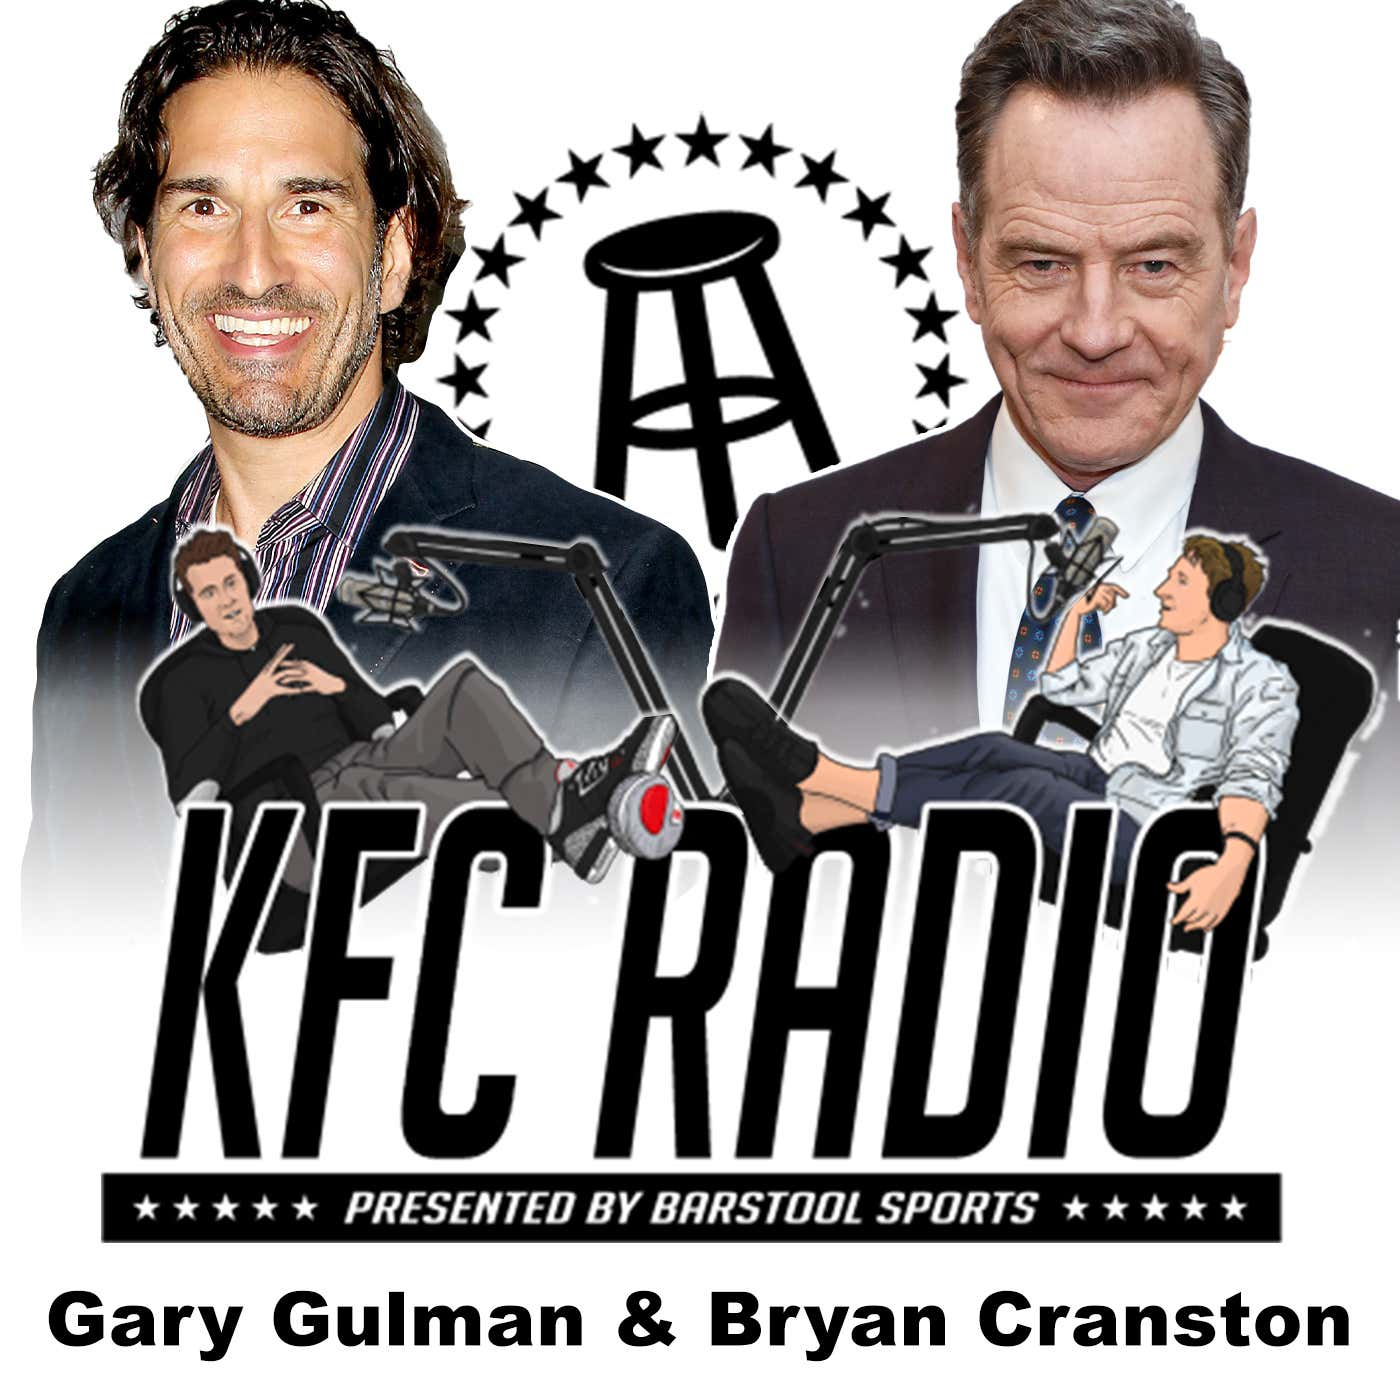 Bryan Cranston, Gary Gulman, The Fight of the Century, and Sex Tape Promos